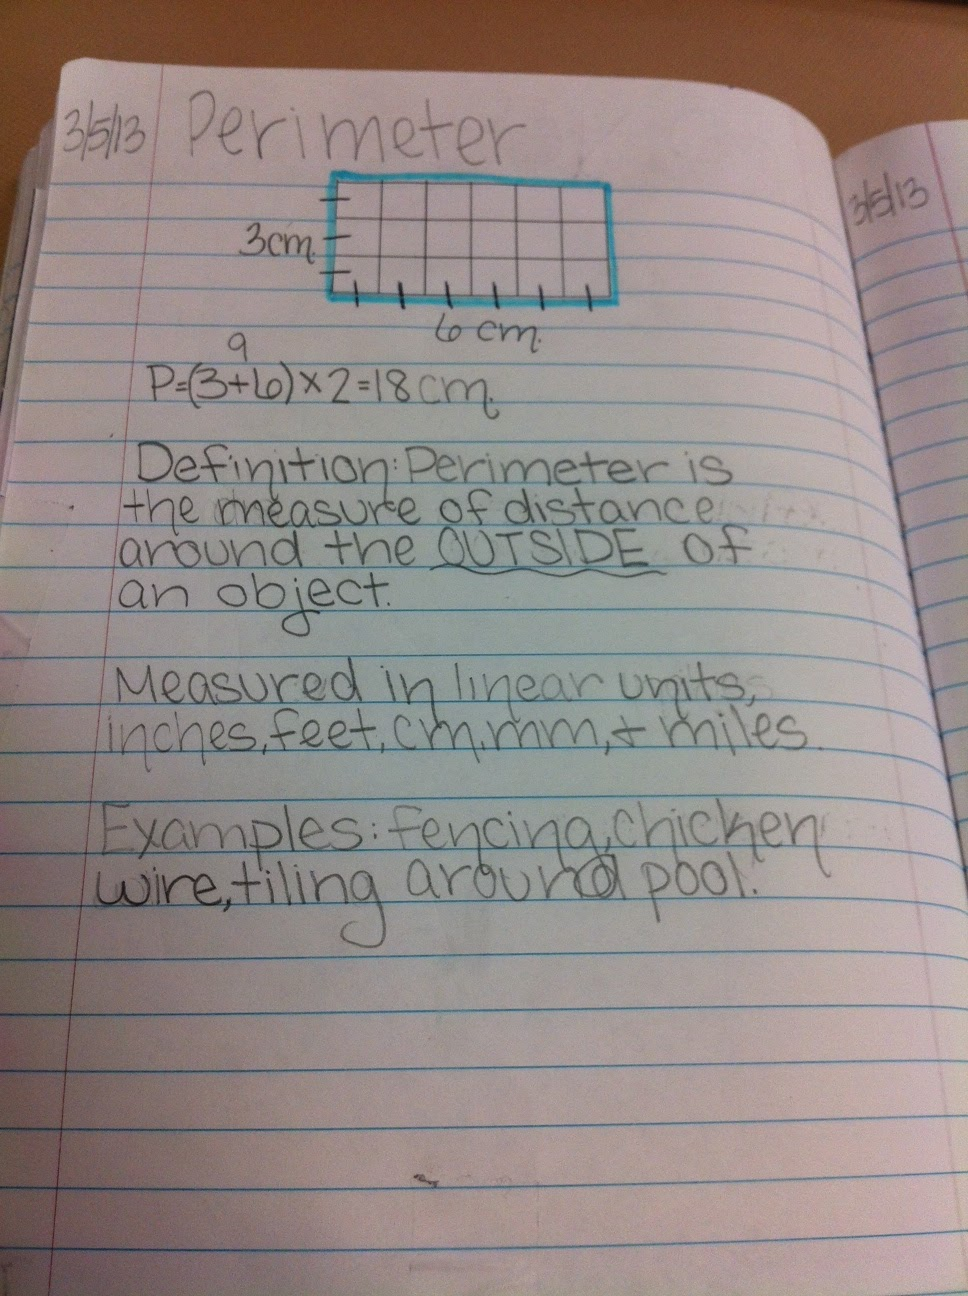 They Were Asked To Find The Perimeter Of One, Use It To Define Perimeter,